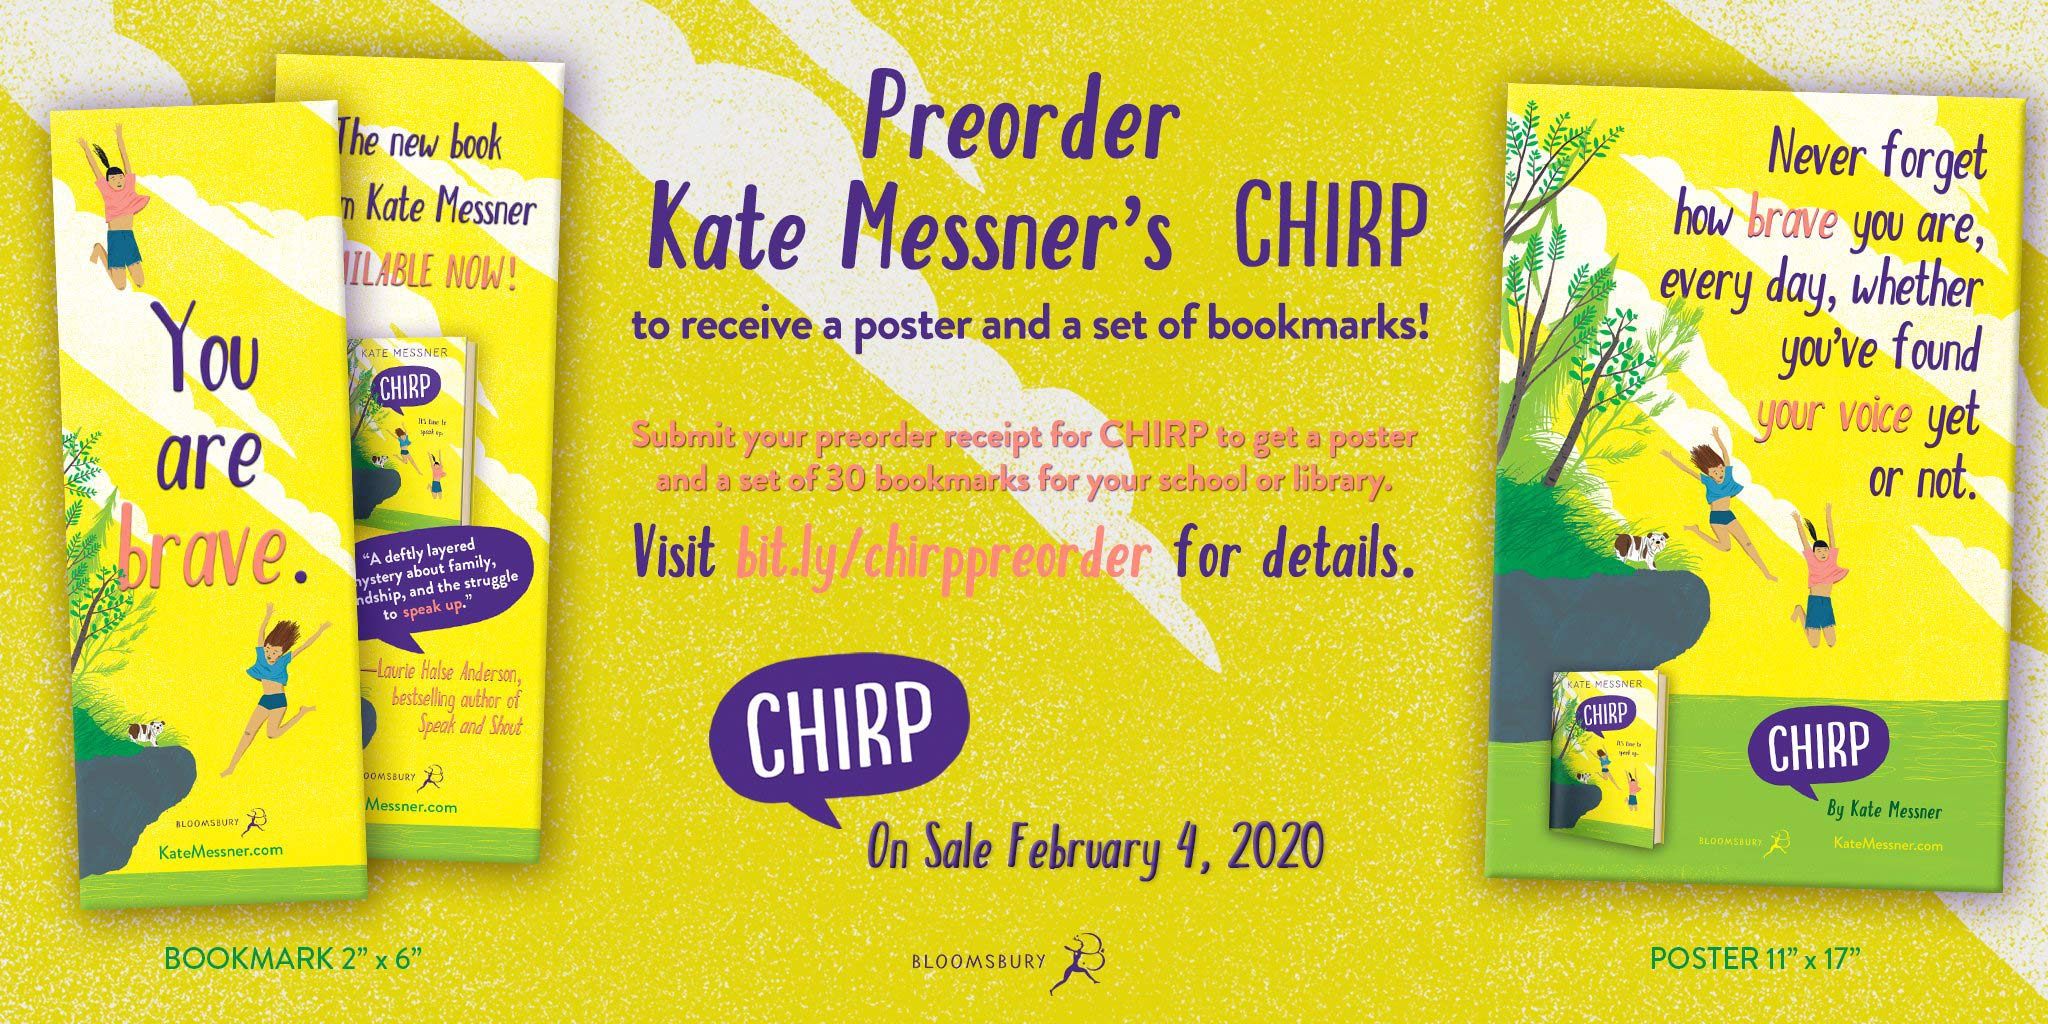 Pre-order Chirp and get a poster and a set of 30 bookmarks for your school or library. Visit bit.ly/chirppreorder for details